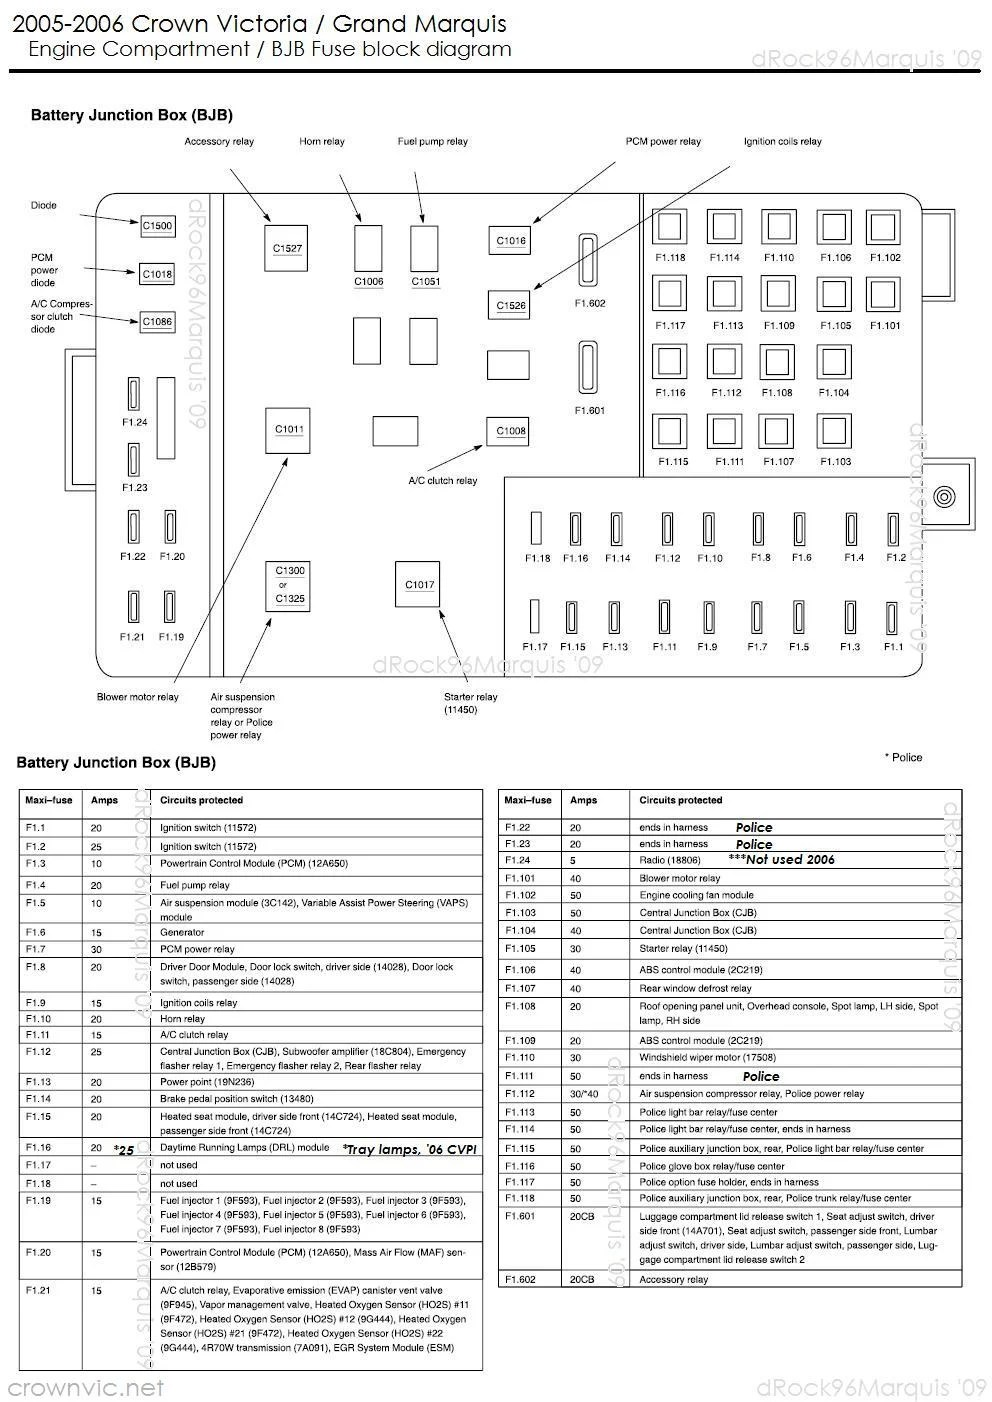 hight resolution of 2006 ford crown victoria fuse box diagram wiring diagrams scematic 2008 ford crown victoria fuse box diagram 05 ford crown vic fuse diagram